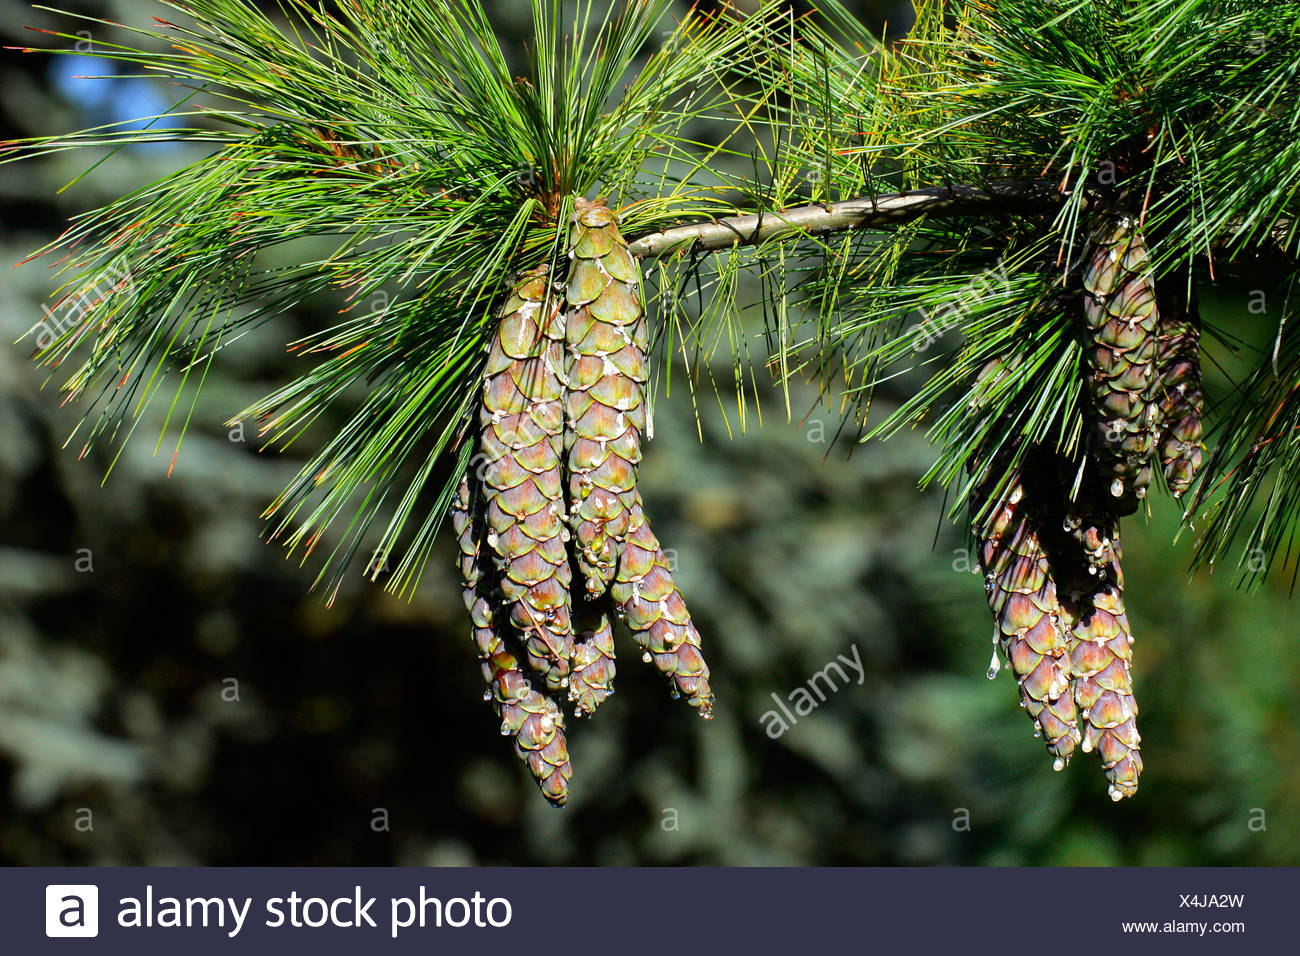 Branch with pine cones - pine tree - conifer (Pinus schwerinii hybrid Fitschen) - Stock Image